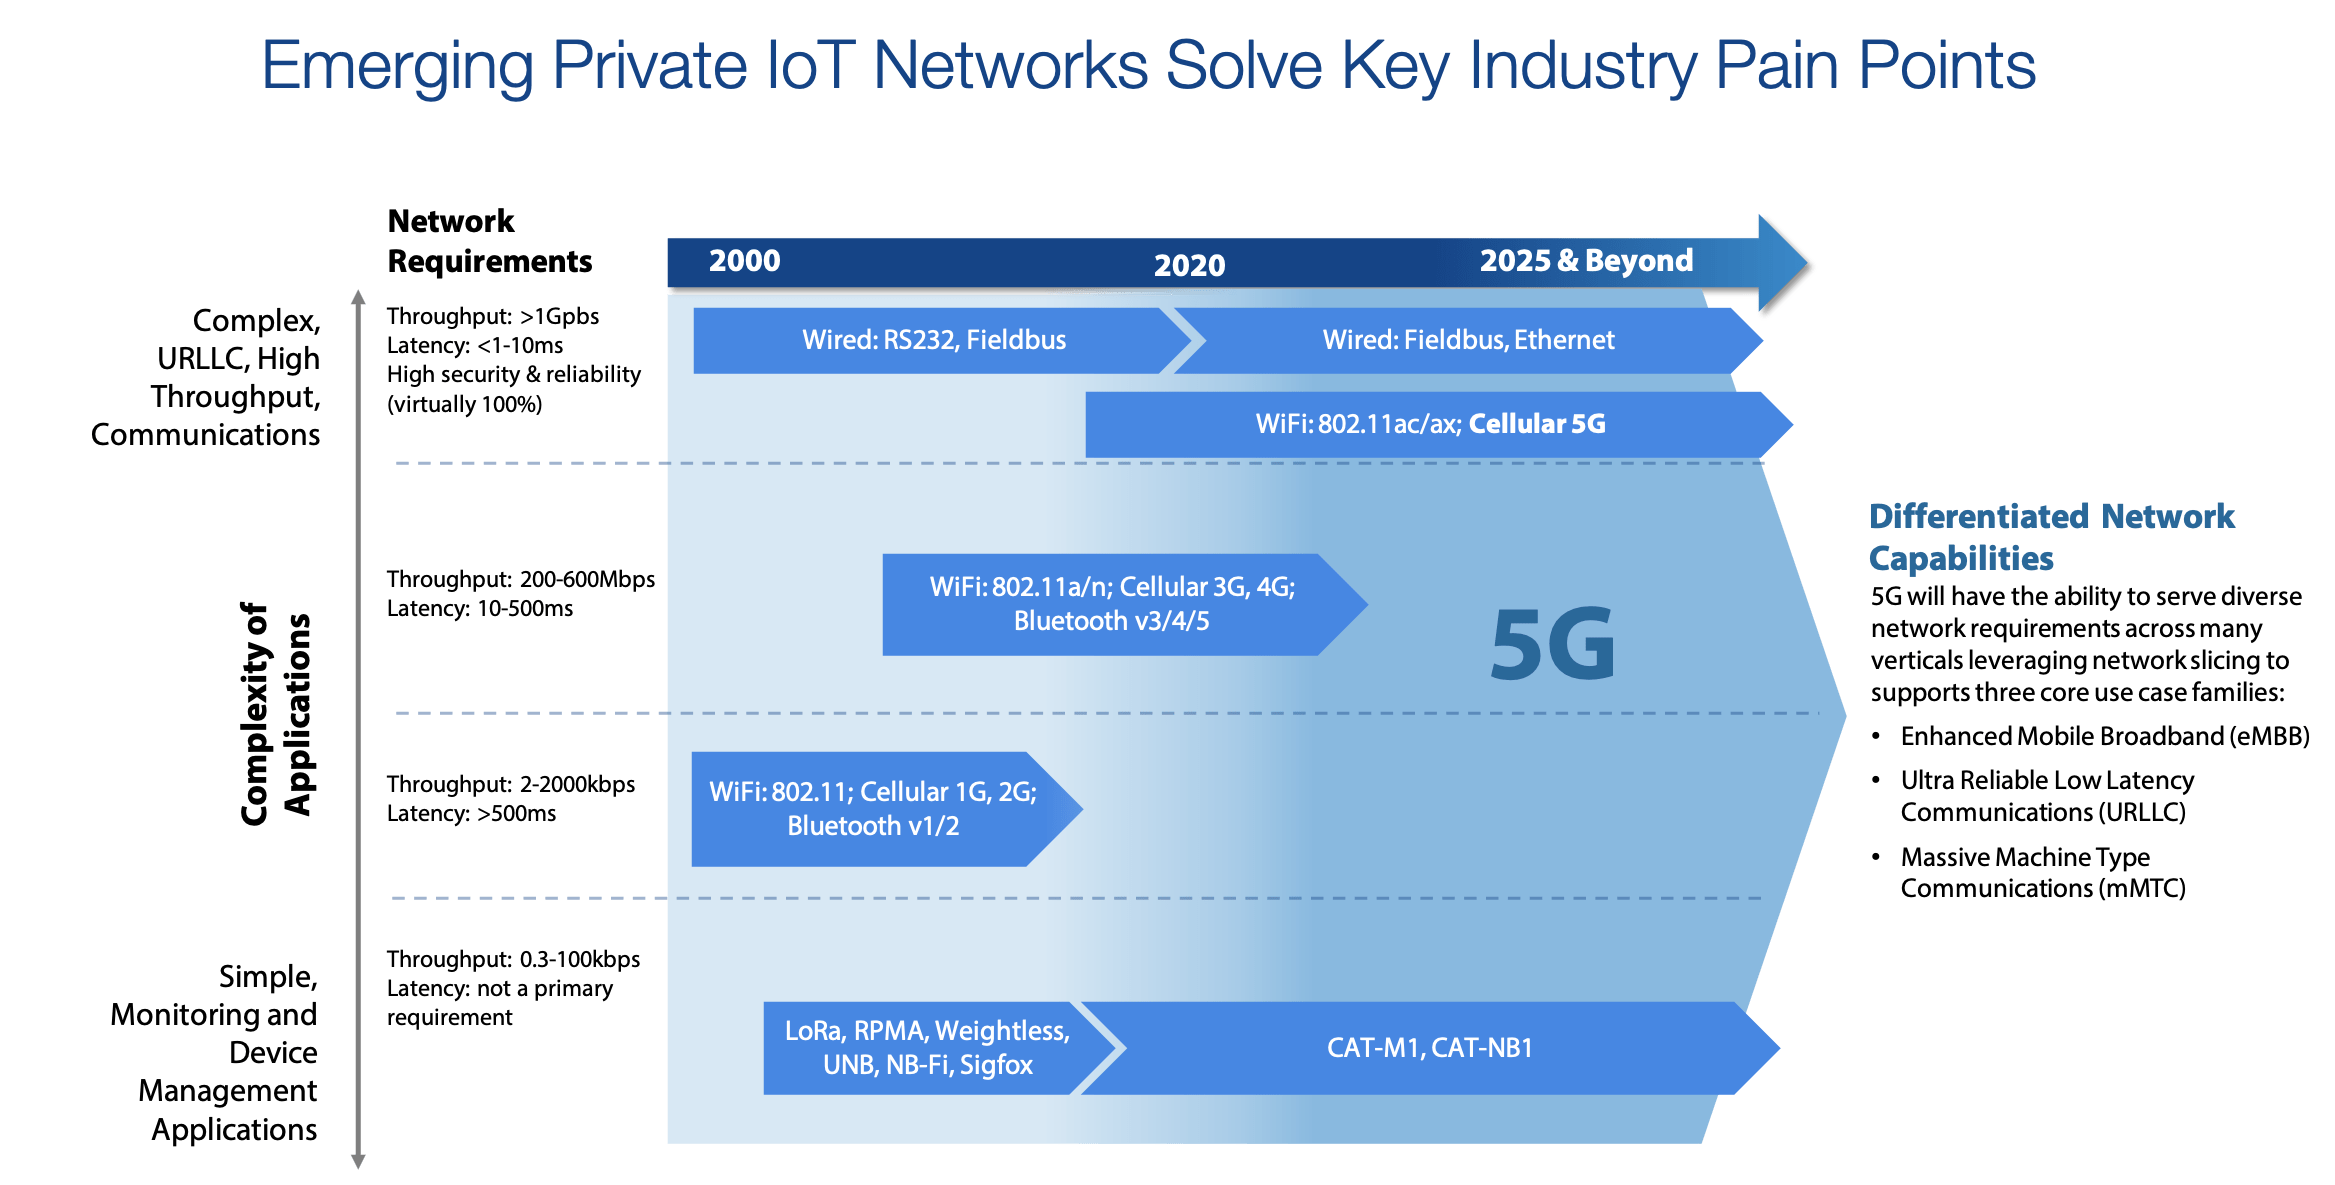 Emerging Private IoT Networks Solve Key Industry Pain Points